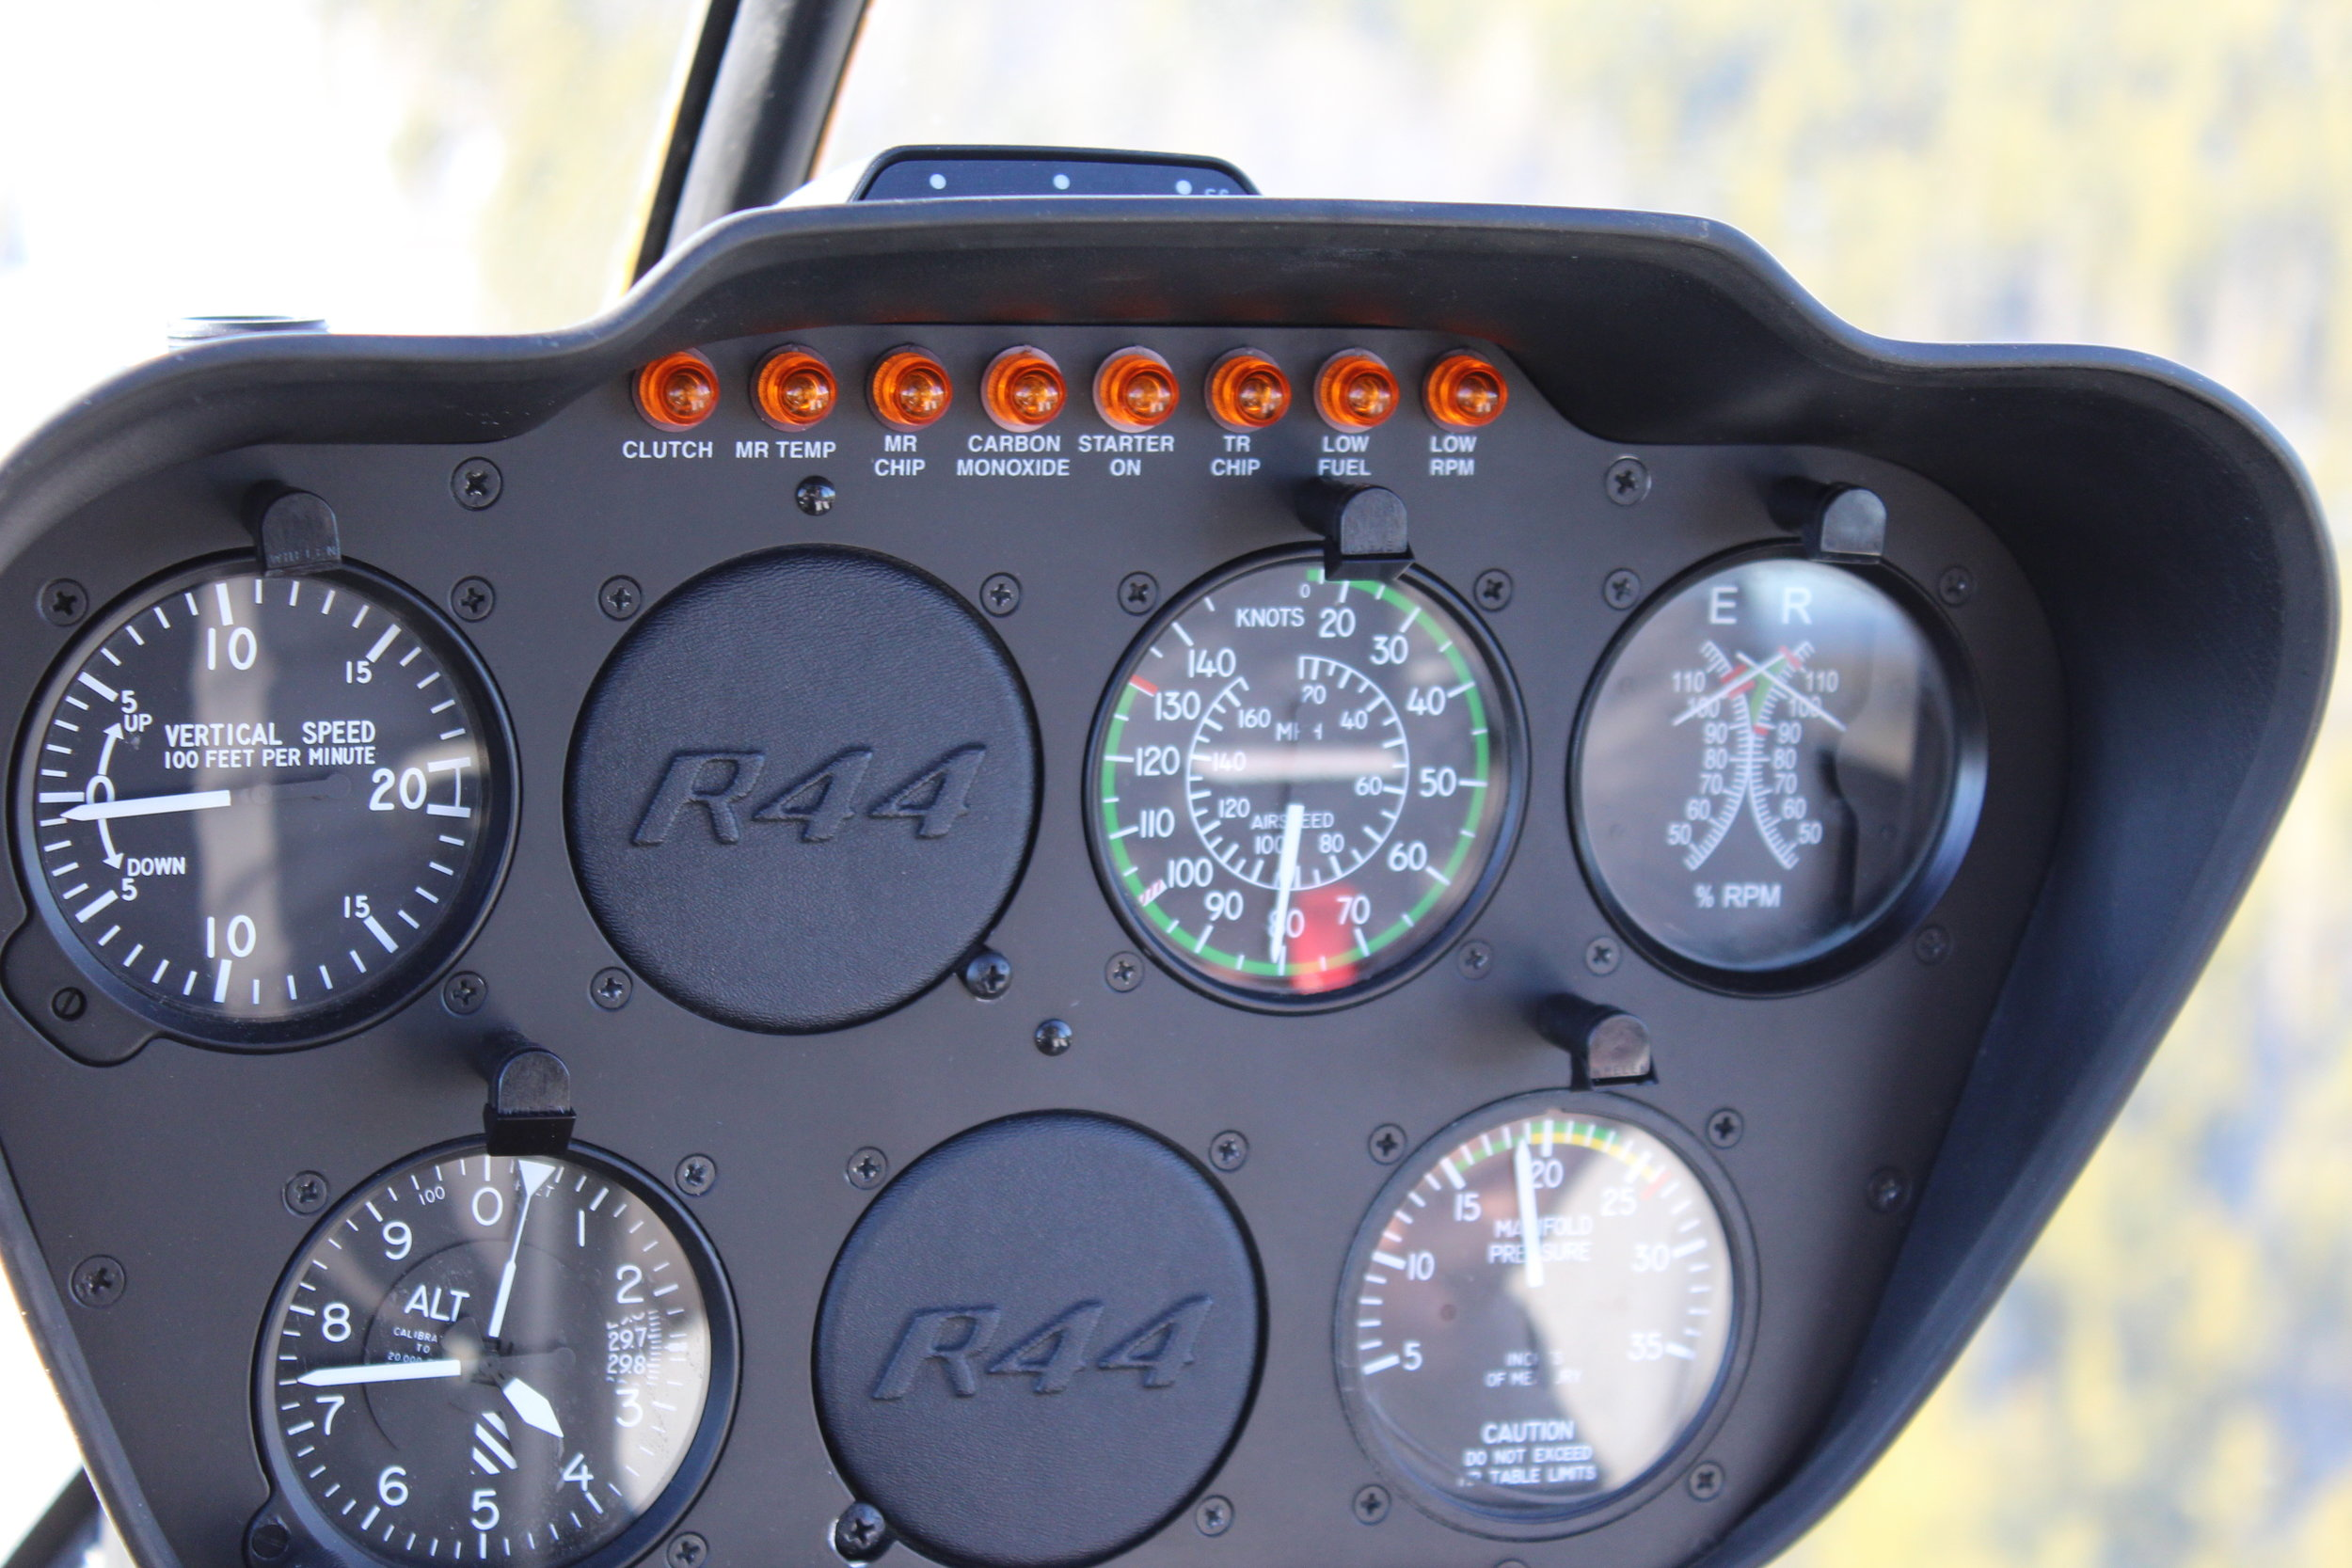 Instrument (IFR) Rating - This rating allows for the operation of a helicopter during instrument flight conditions. Our IFR equipped R44 and Guimbal helicopters, combined with our GPS equipped simulator, IFR experienced instructors and multi-crew standard operating procedures will have you IFR ready in no time.